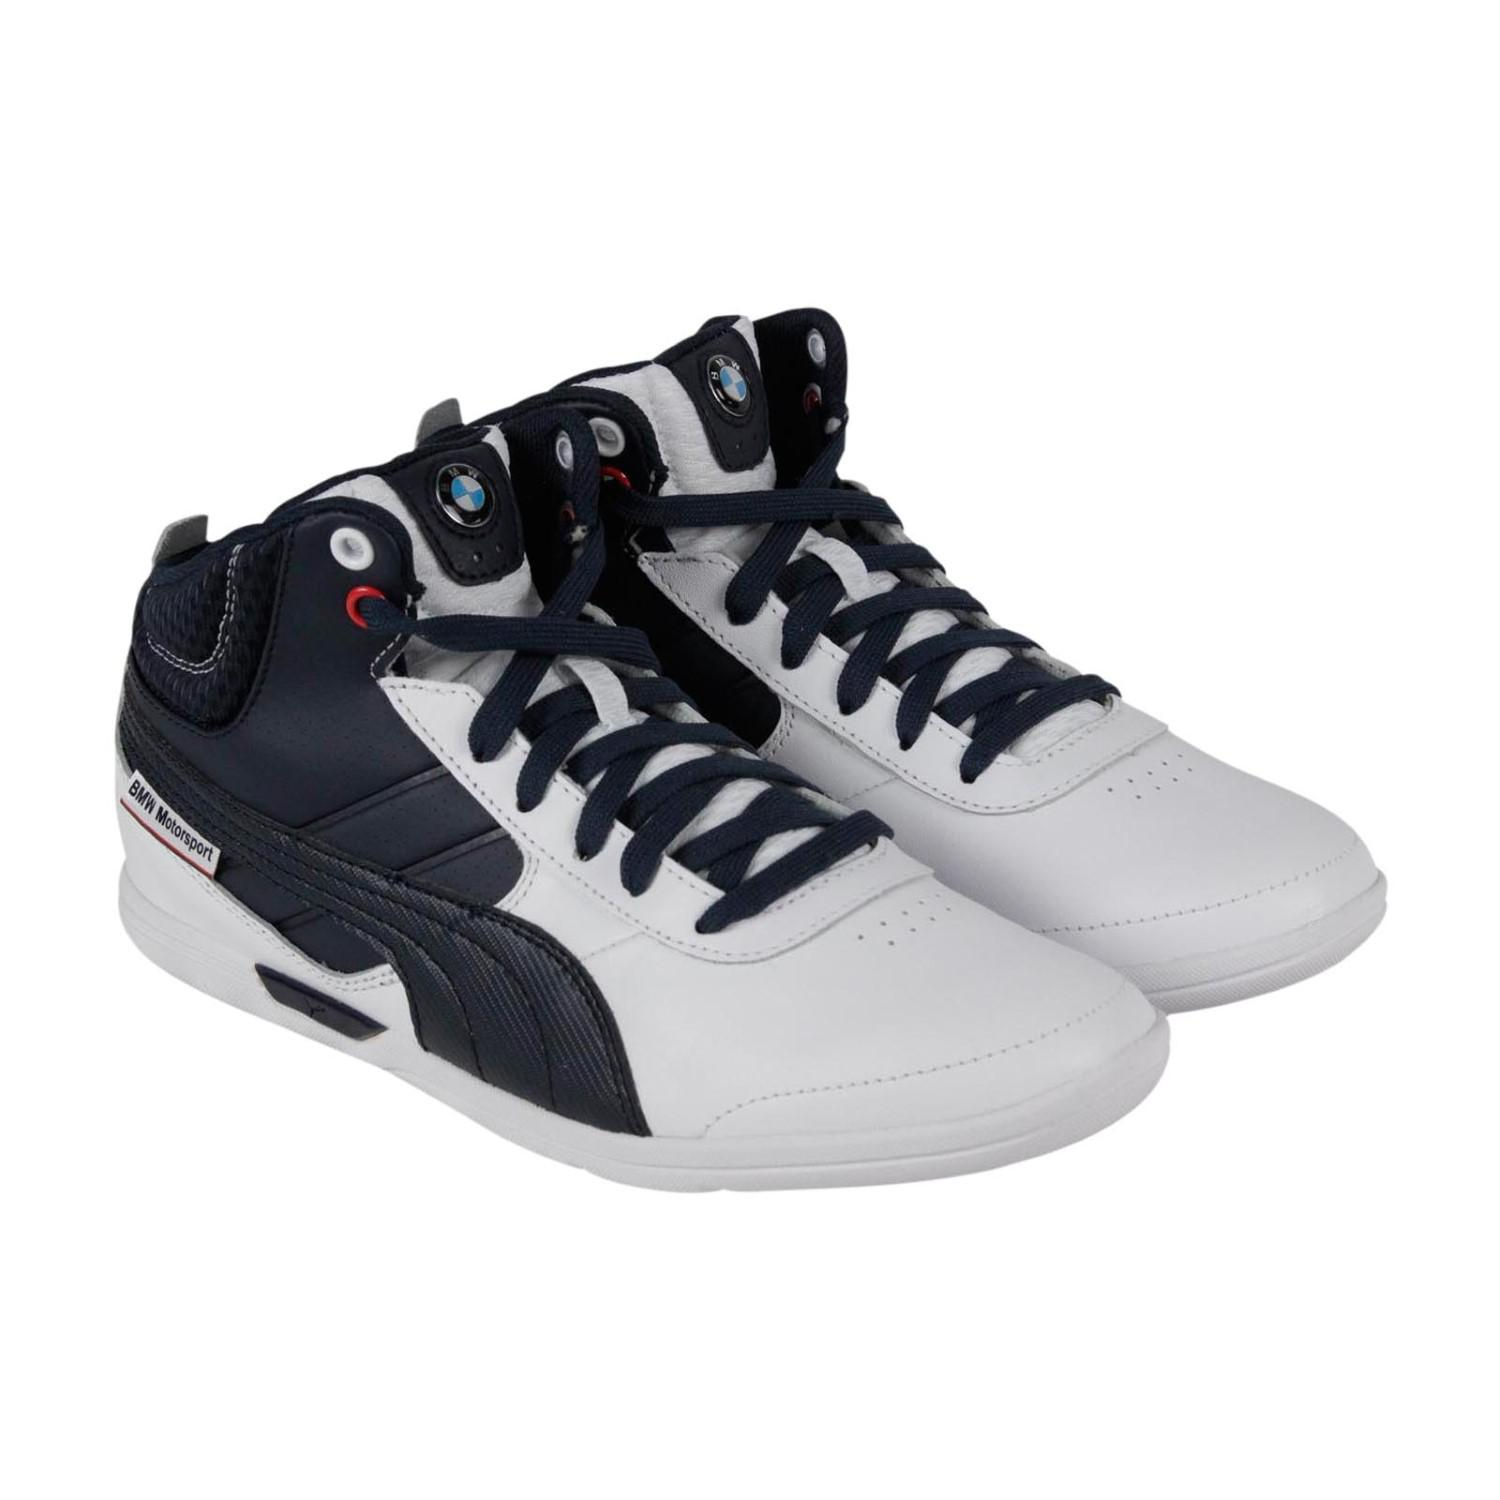 9e4973114bdc Lyst - PUMA Bmw Ms Mch Mid White bmw Team Blue Casual Shoe 8.5 Men ...